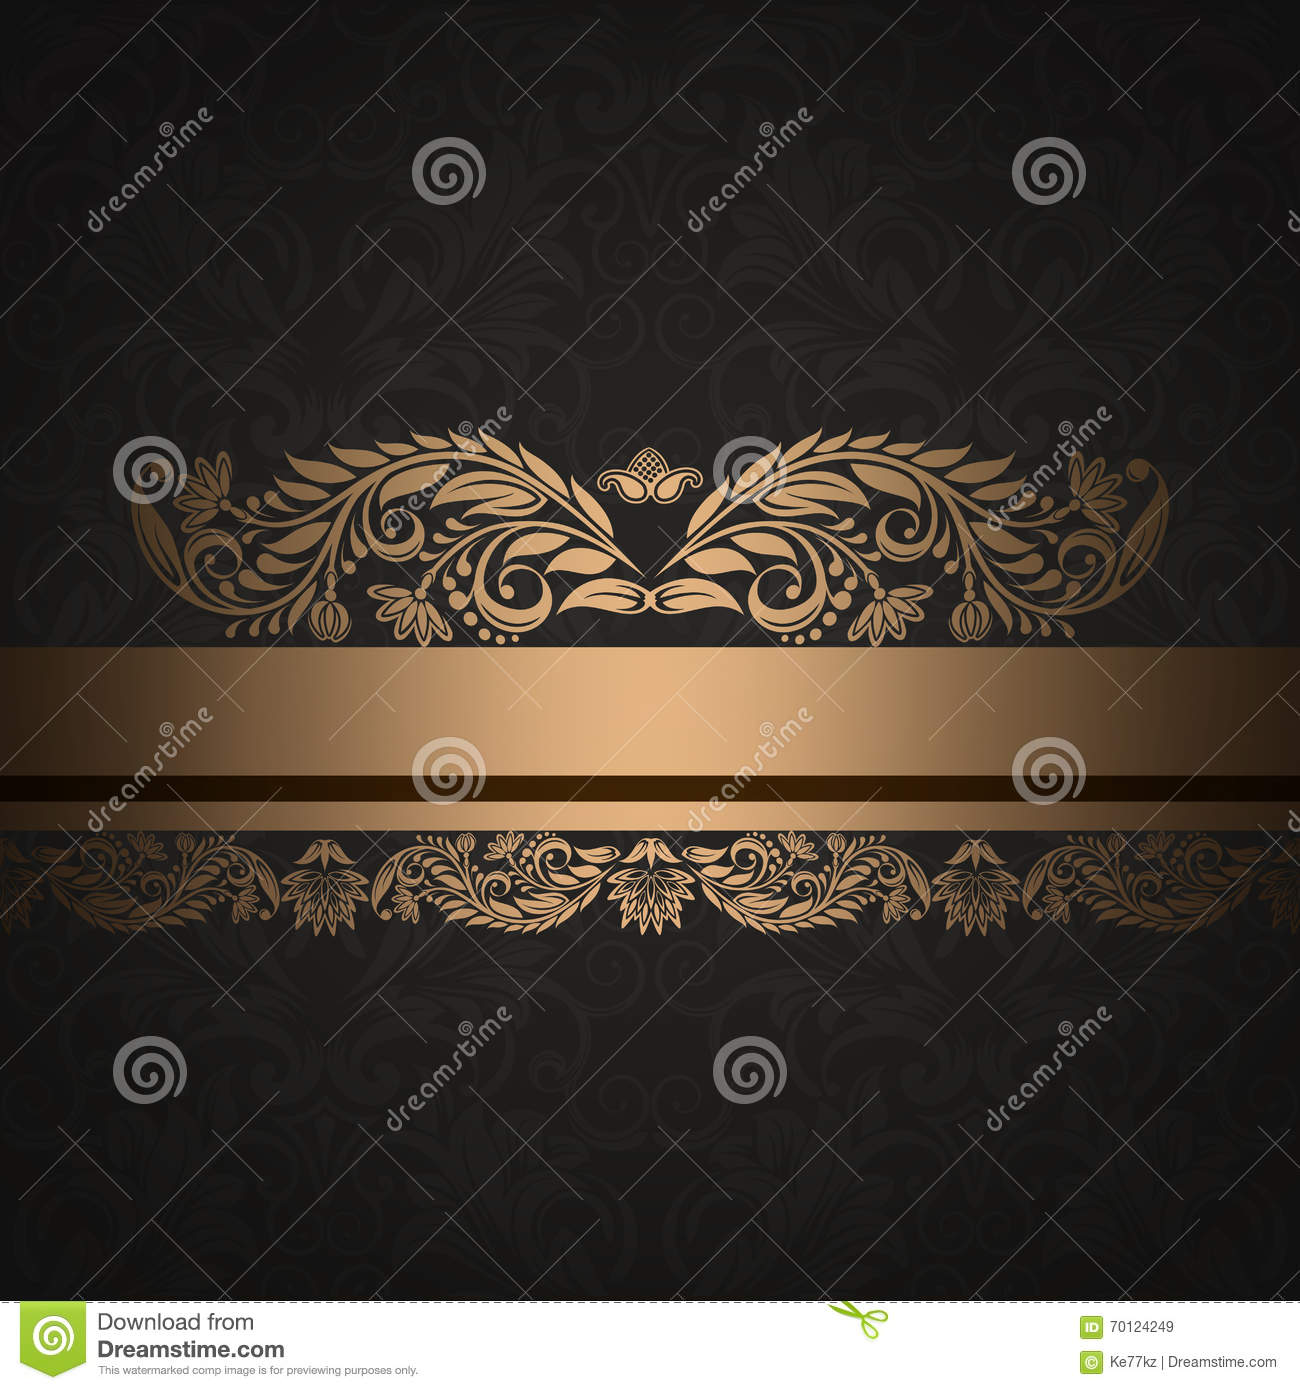 Decorative Black Flower Border Stock Image: Decorative Vintage Background With Gold Floral Border